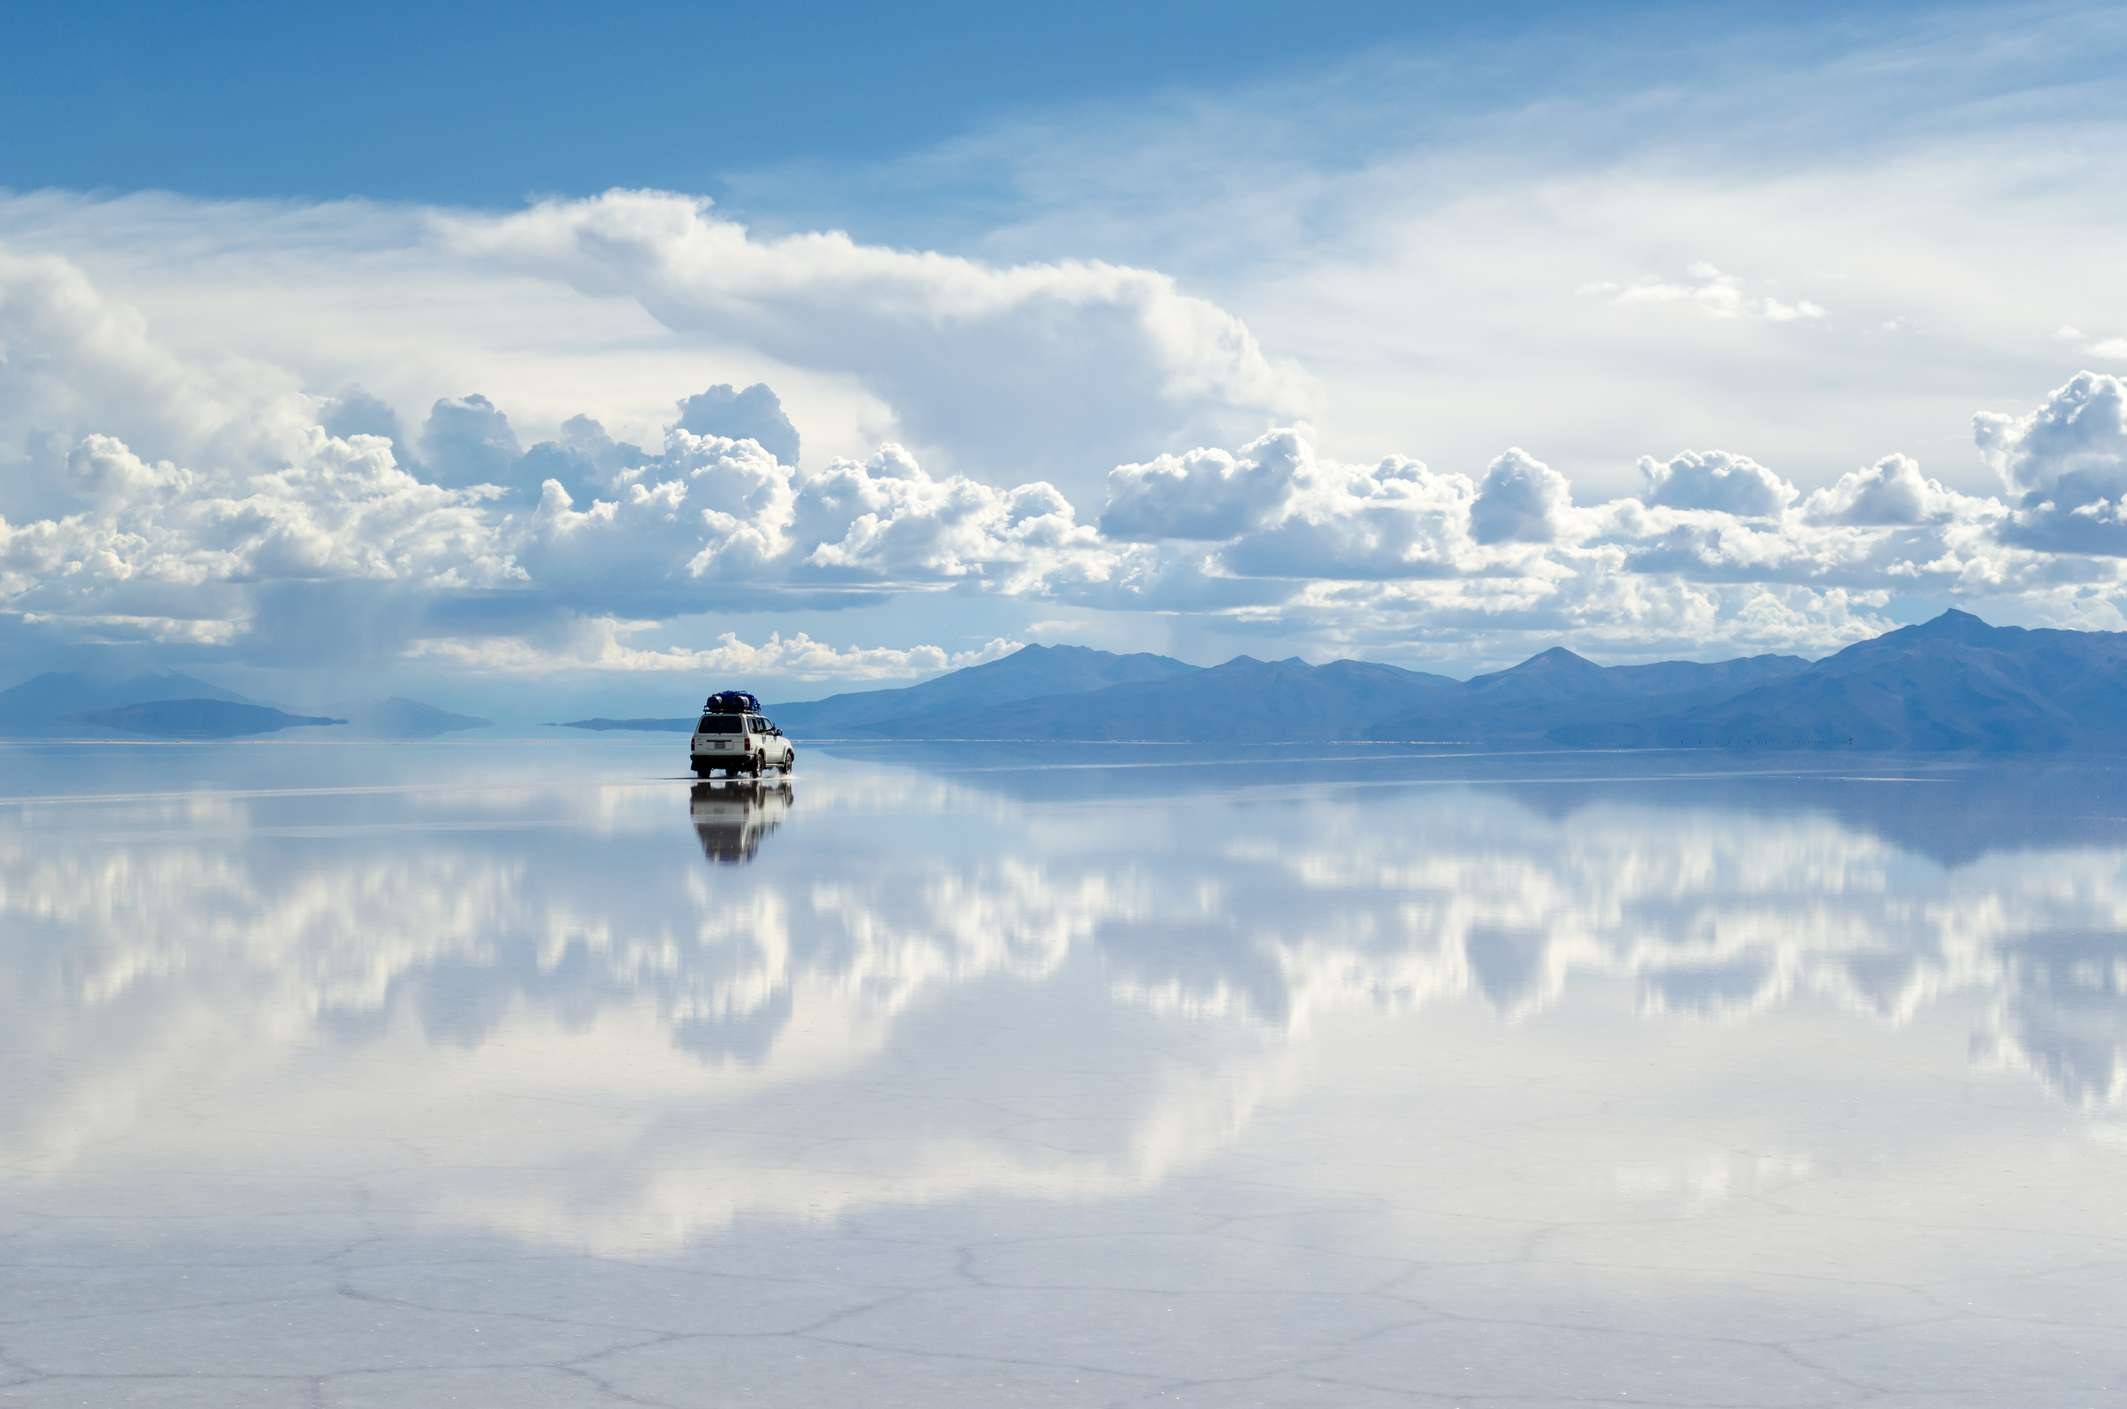 A Complete Guide to the Salar de Uyuni, the Salt Flats of Bolivia